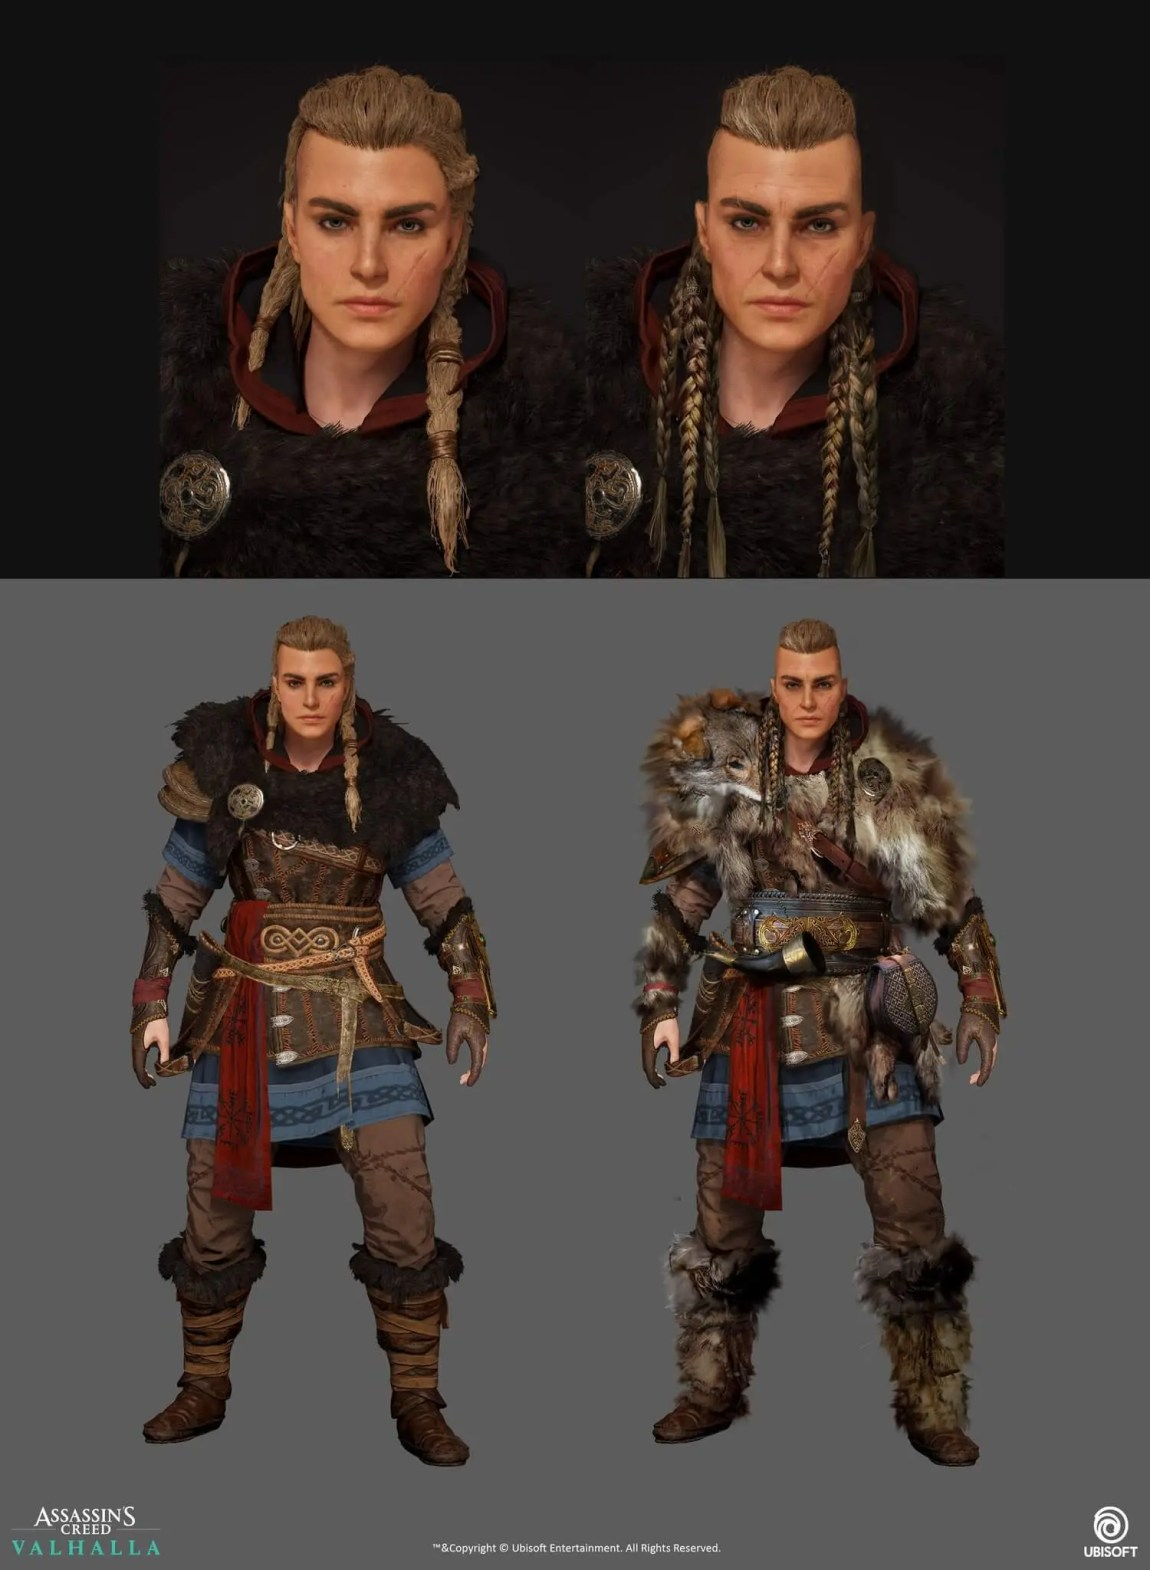 Eivor aging over time in upcoming Assassin's Creed Valhalla expansions